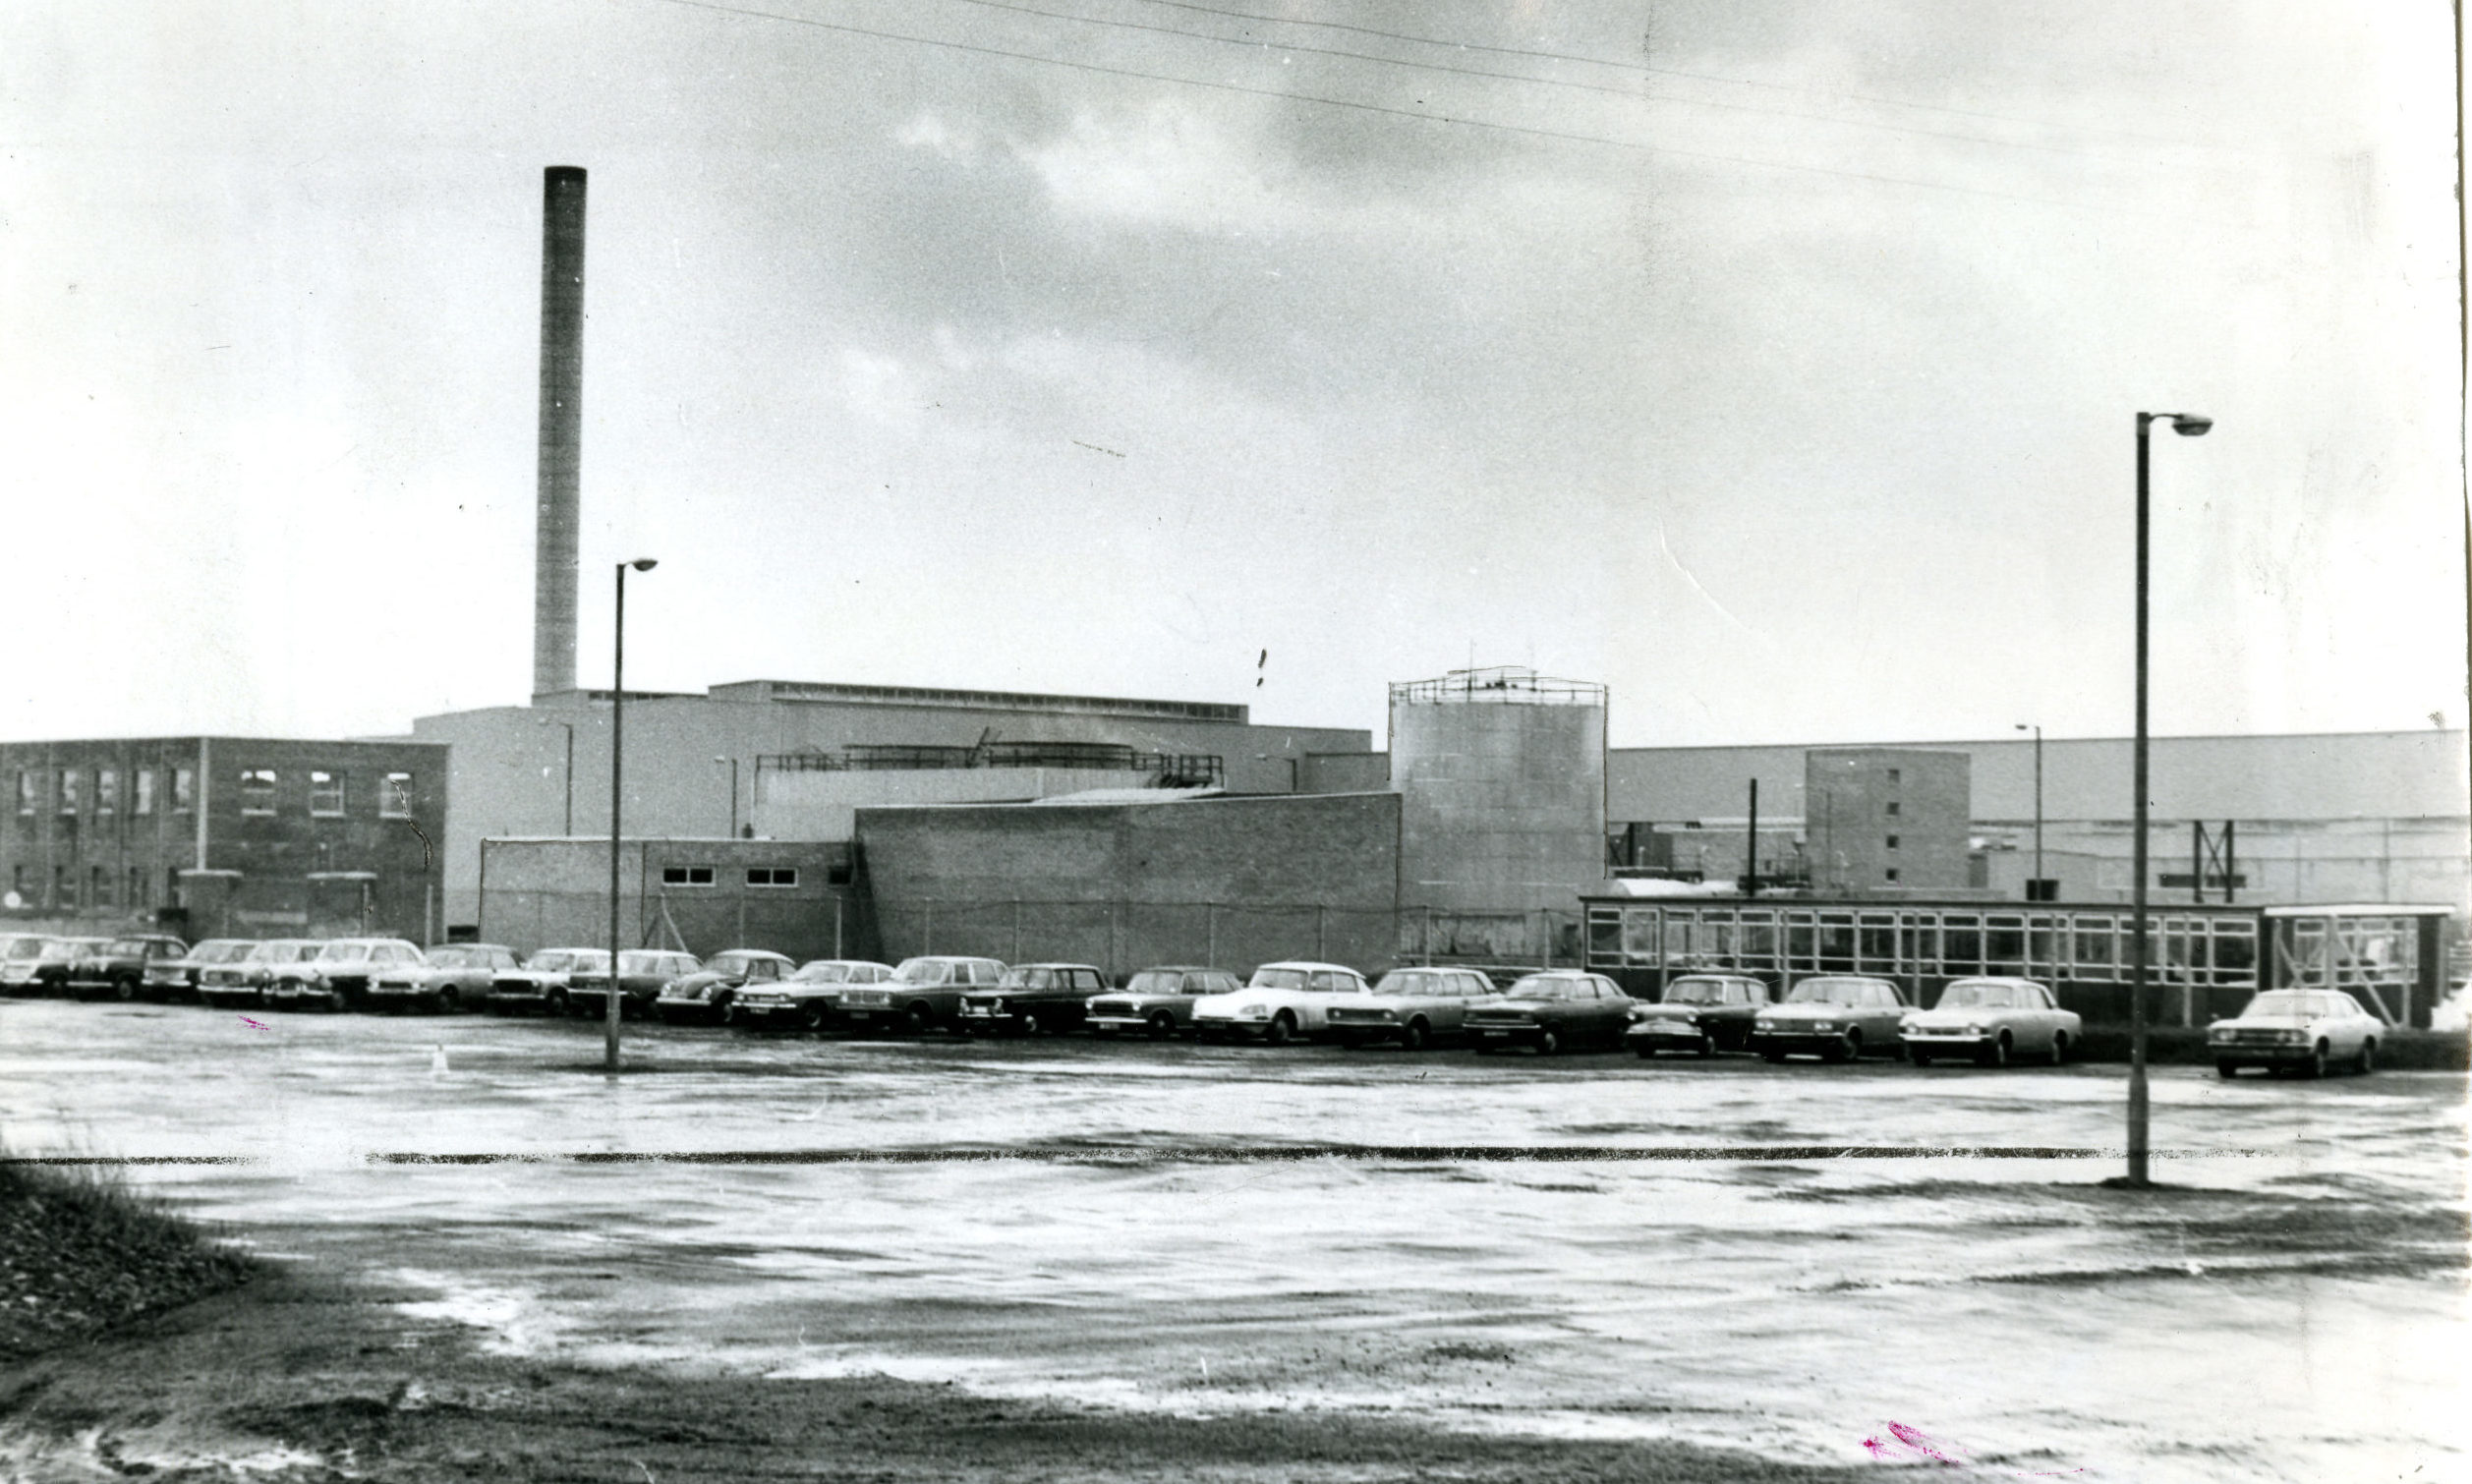 The Michelin Factory in Dec 1972.